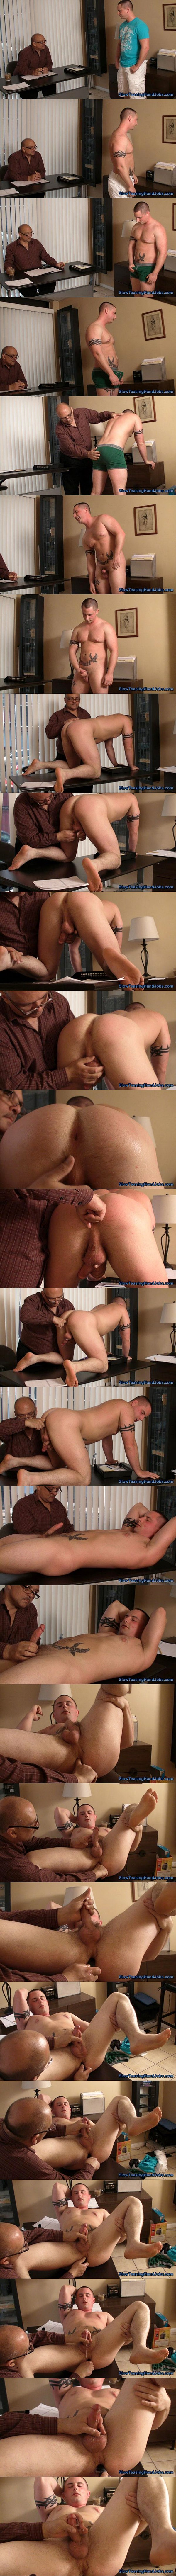 Handsome straight muscle hunk Shawn gets his virgin hole fingered, dildo fucked and jerked off by master Rich in Second Audition at Slowteasinghandjobs 01